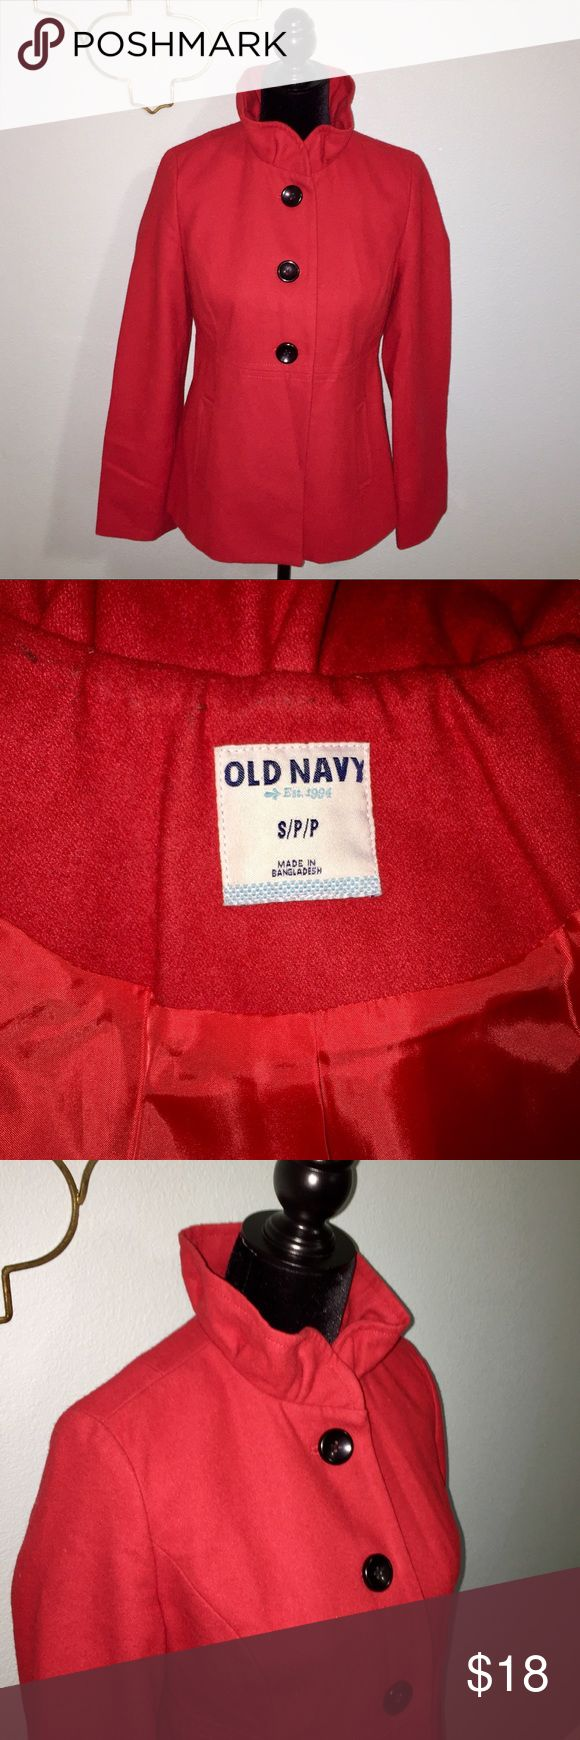 Old Navy red wool ruffle collar pea coat Adorable Old Navy wool, ruffle collar pea coat. Size small. Chest 36 inches, collar to hem 25 inches, sleeve 30 inches. 44% polyester, 38% wool, 10% rayon, 7% acrylic. Old Navy Jackets & Coats Pea Coats